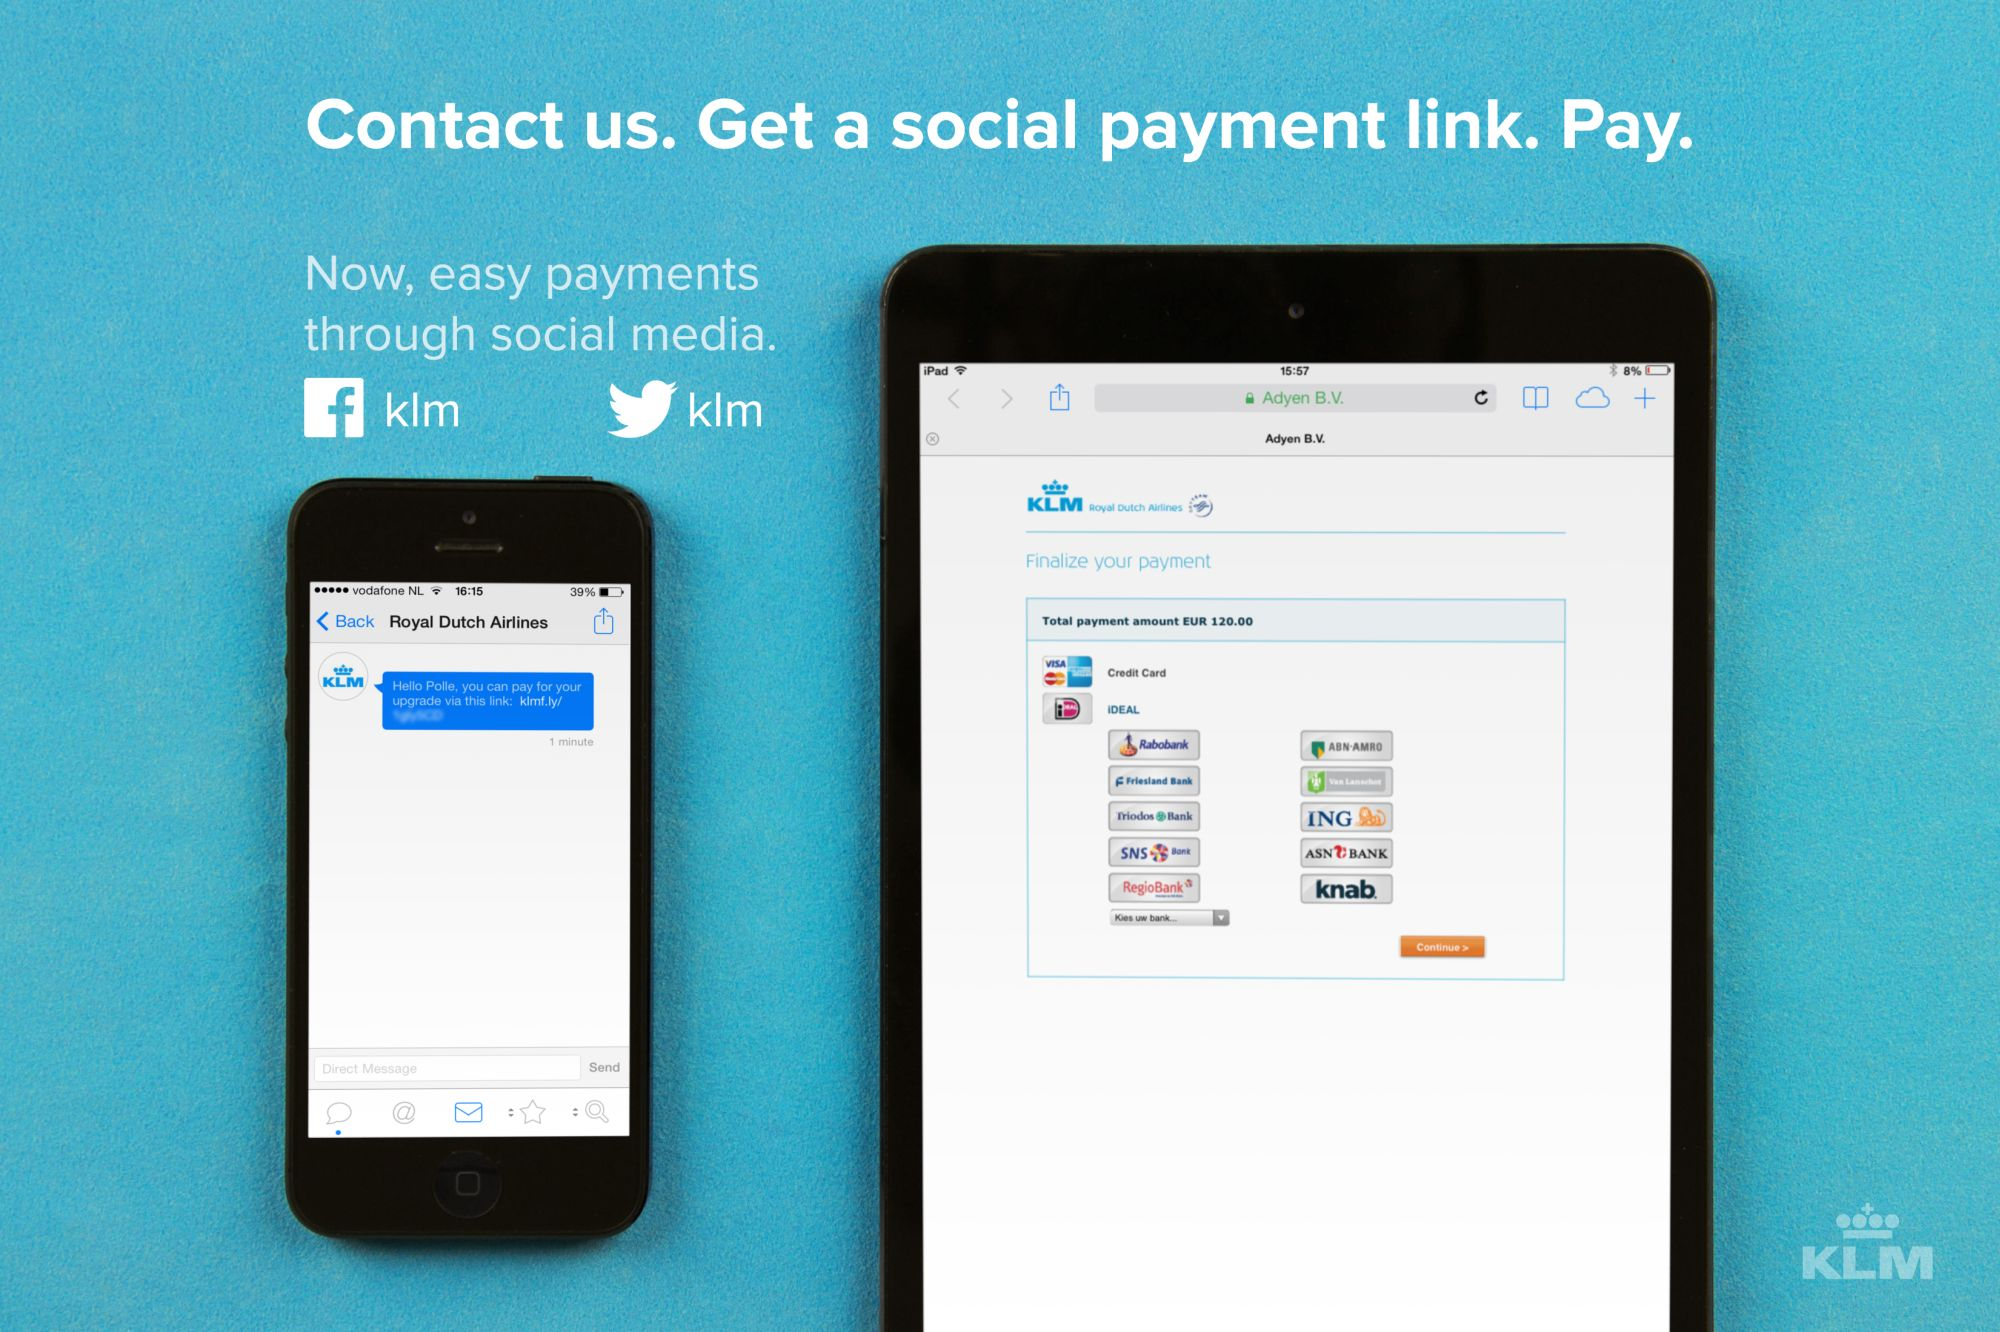 KLM: Payment via Facebook and Twitter